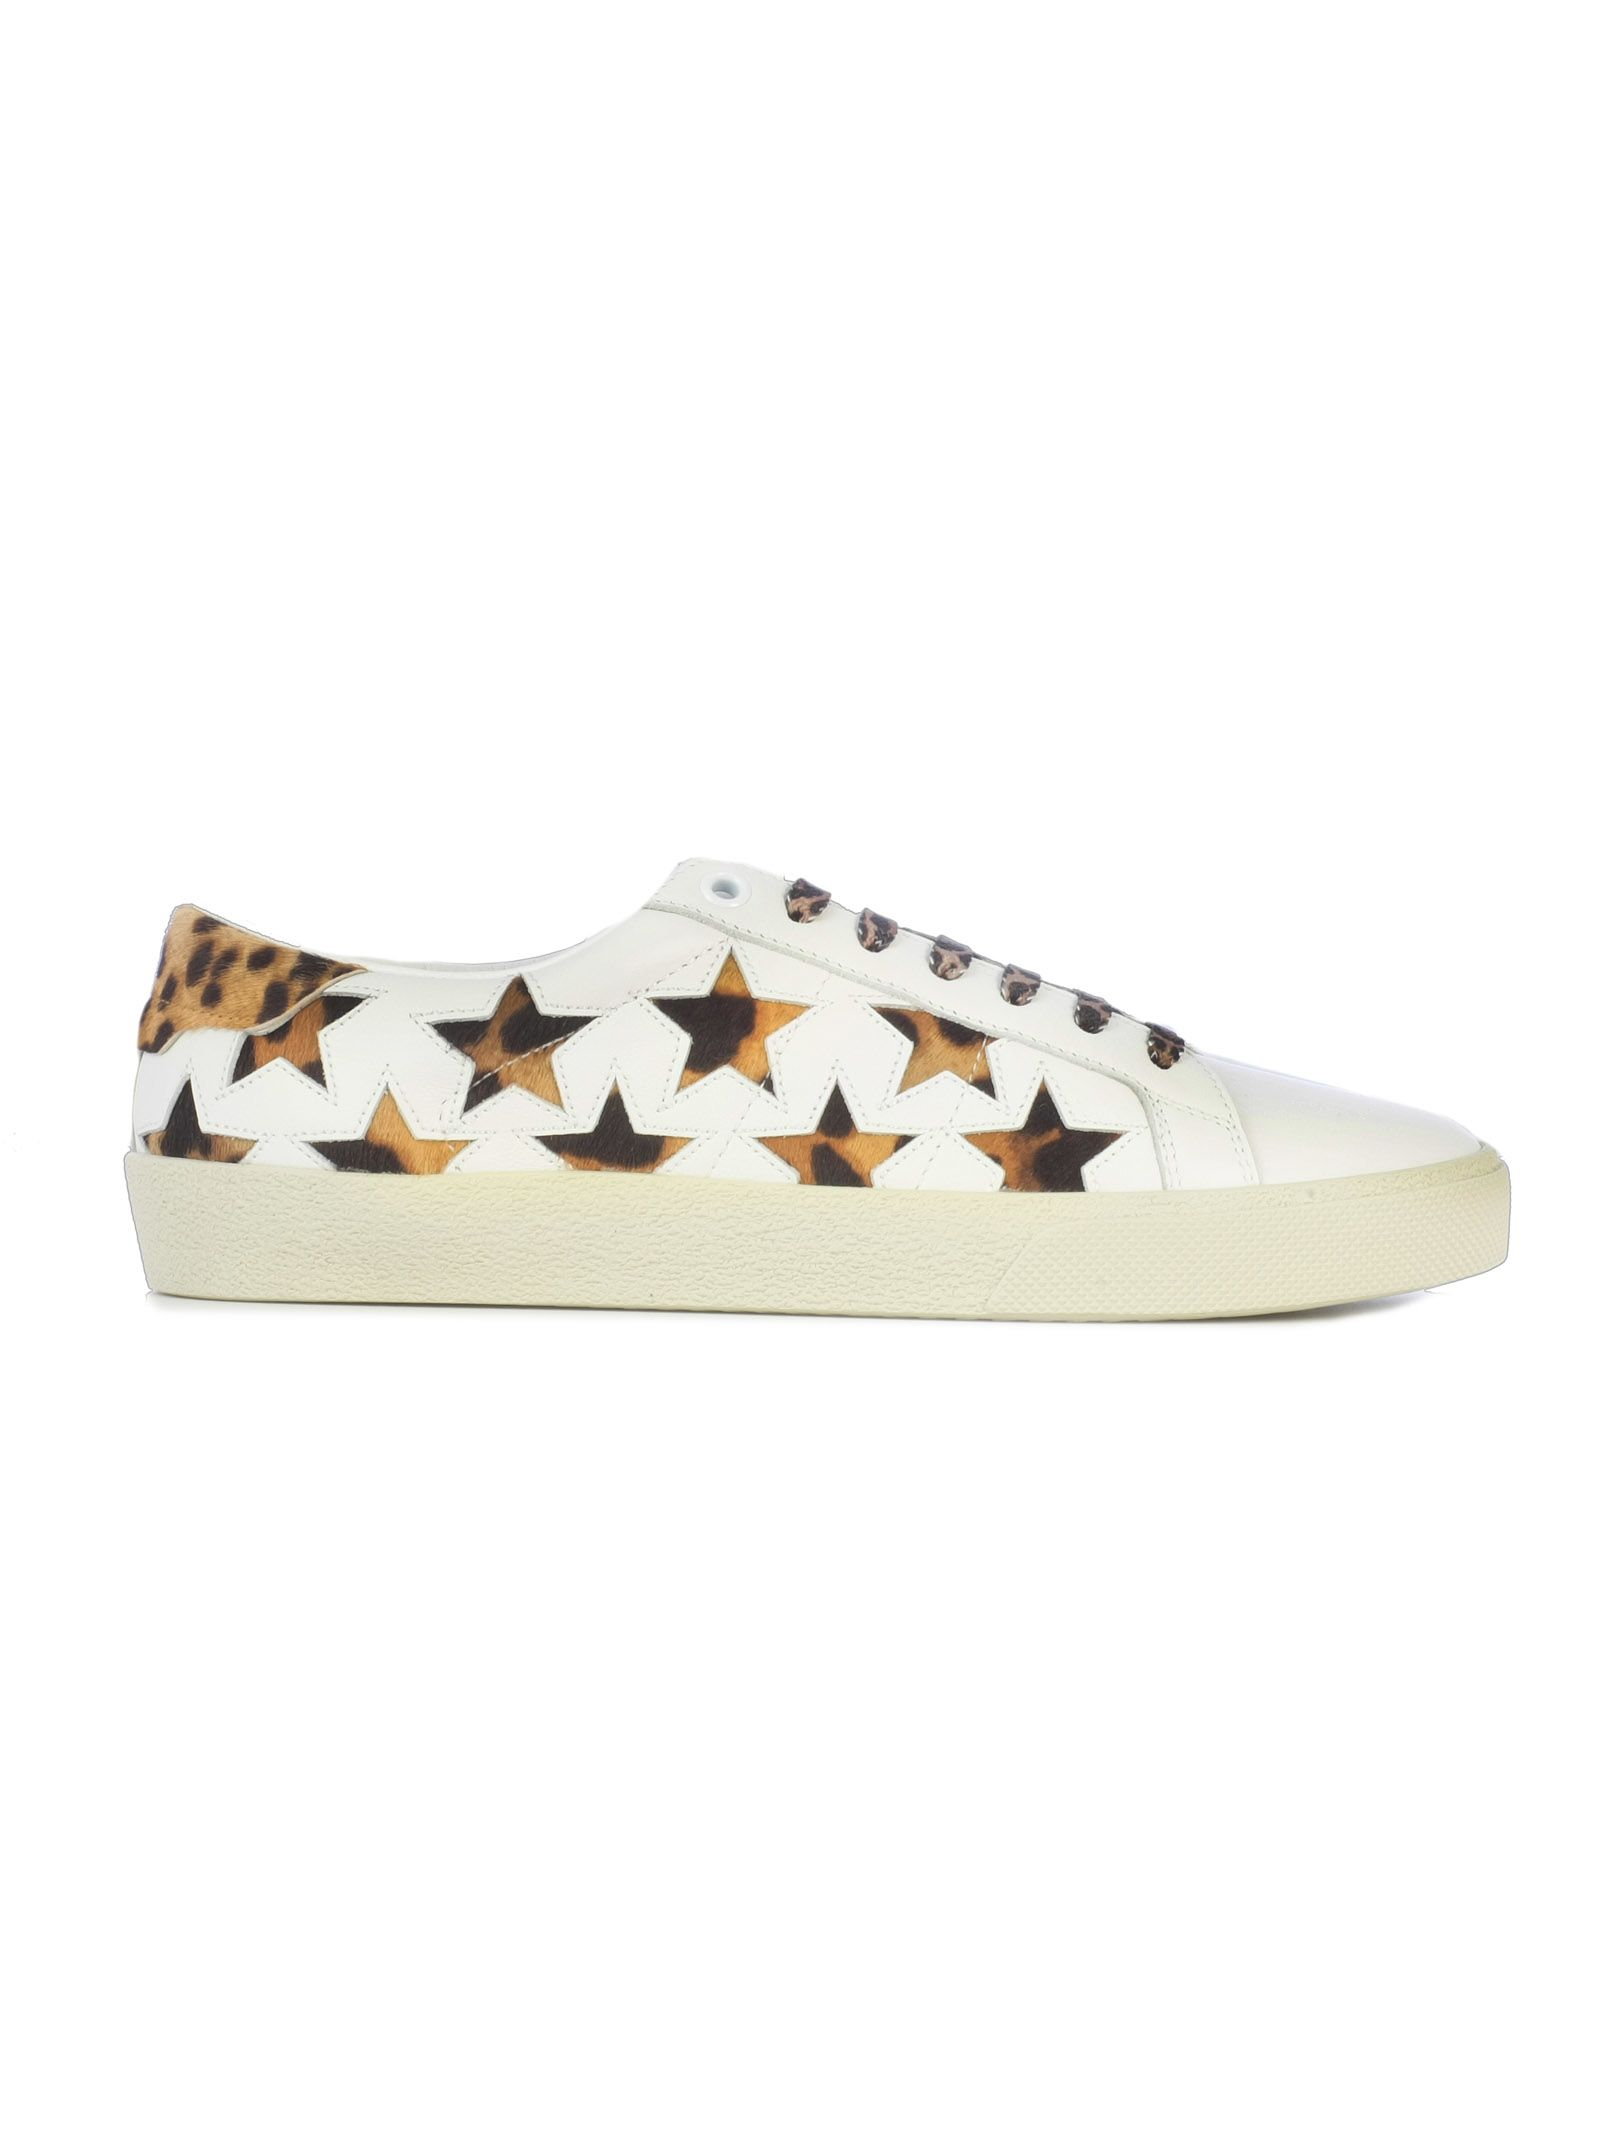 SL/06 Cheetah Star Court Classic Sneaker in White